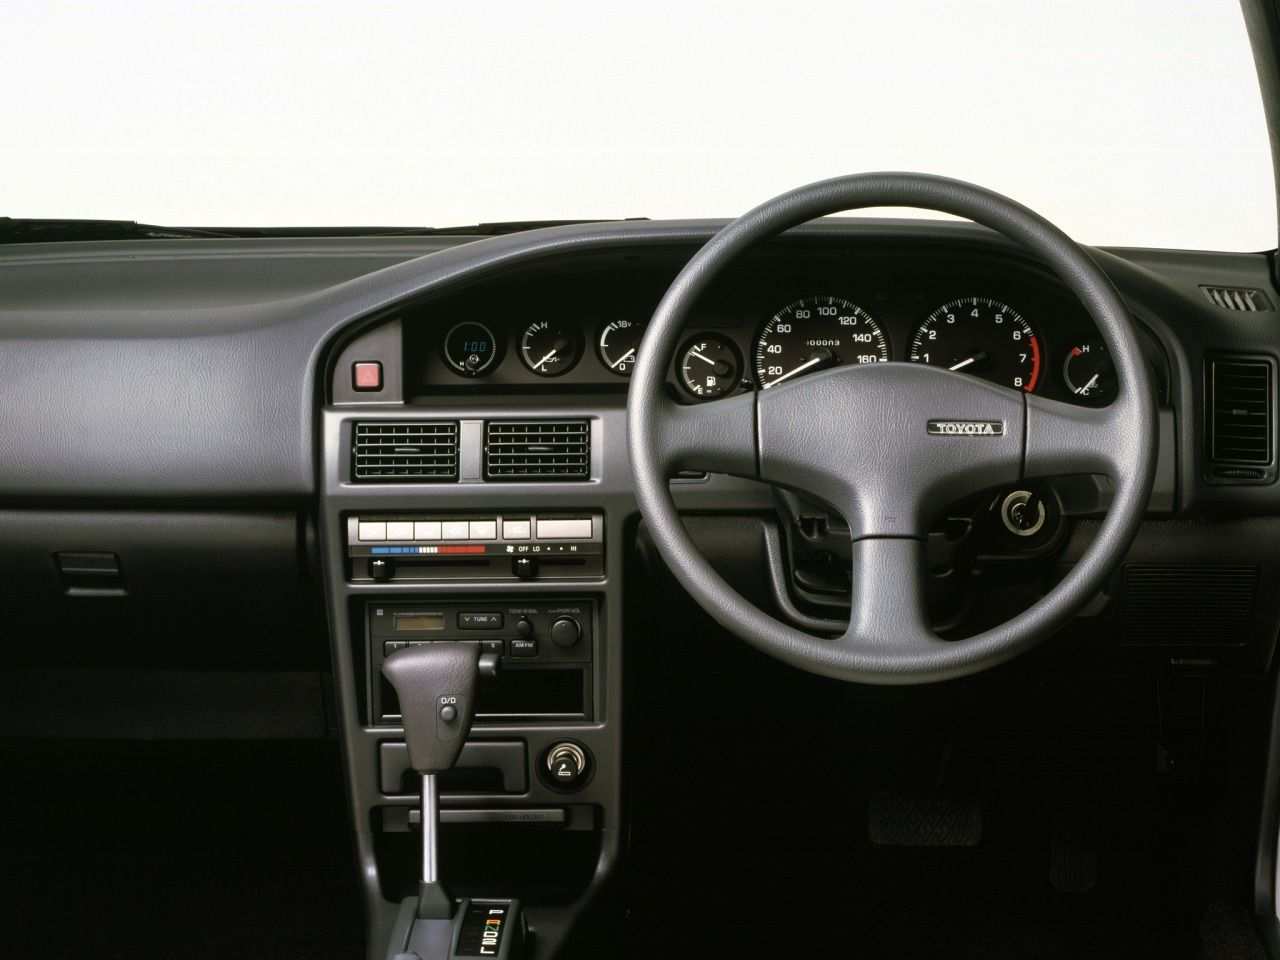 toyota tazz wiring diagram download modified toyota tazz interior dashboard | wiring library modified toyota tazz interior dashboard